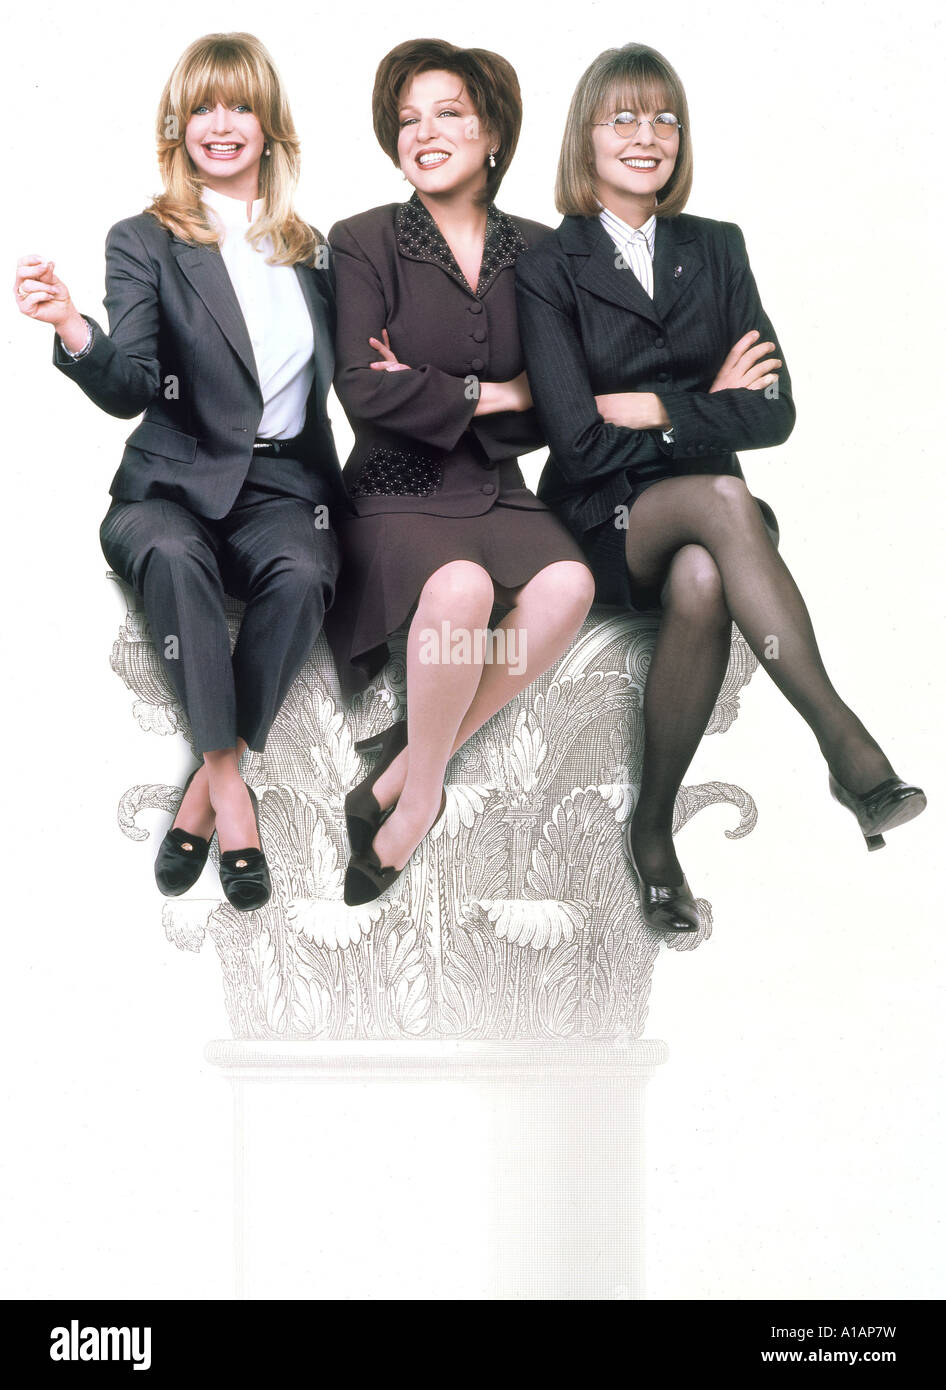 The First Wives Club Year 1996 Director Hugh Wilson Goldie Hawn Bette Midler Diane Keaton - Stock Image